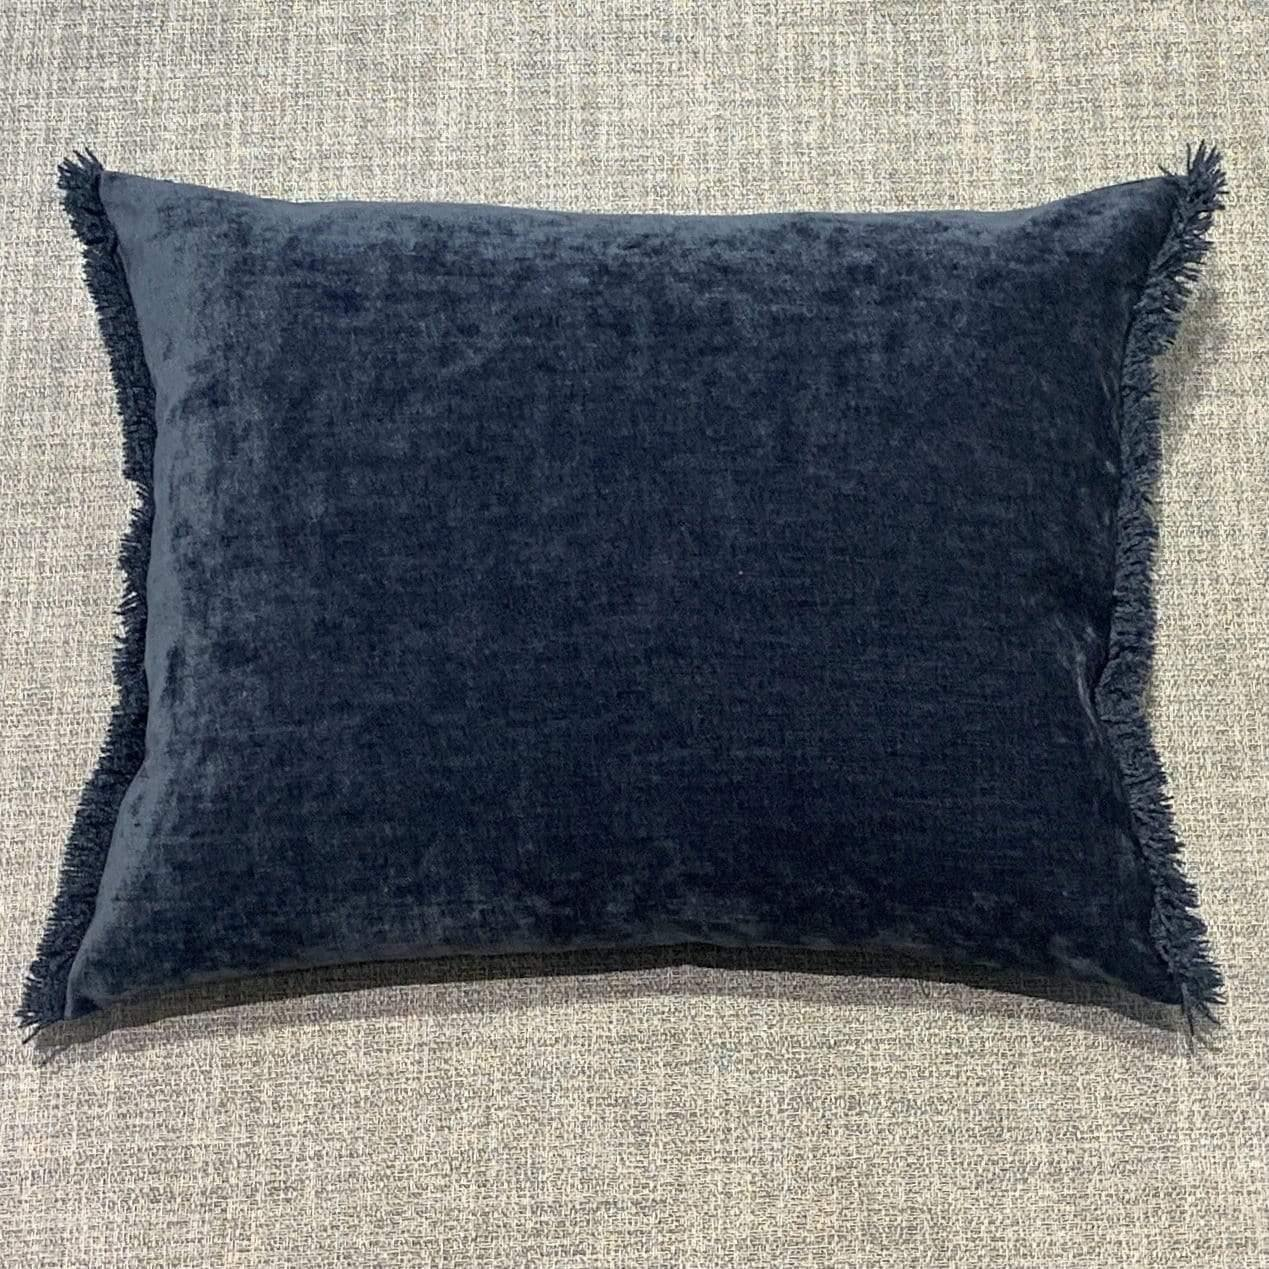 Cushion Marine Nomad Luxe Chenille Cushion 16 x 20 inch